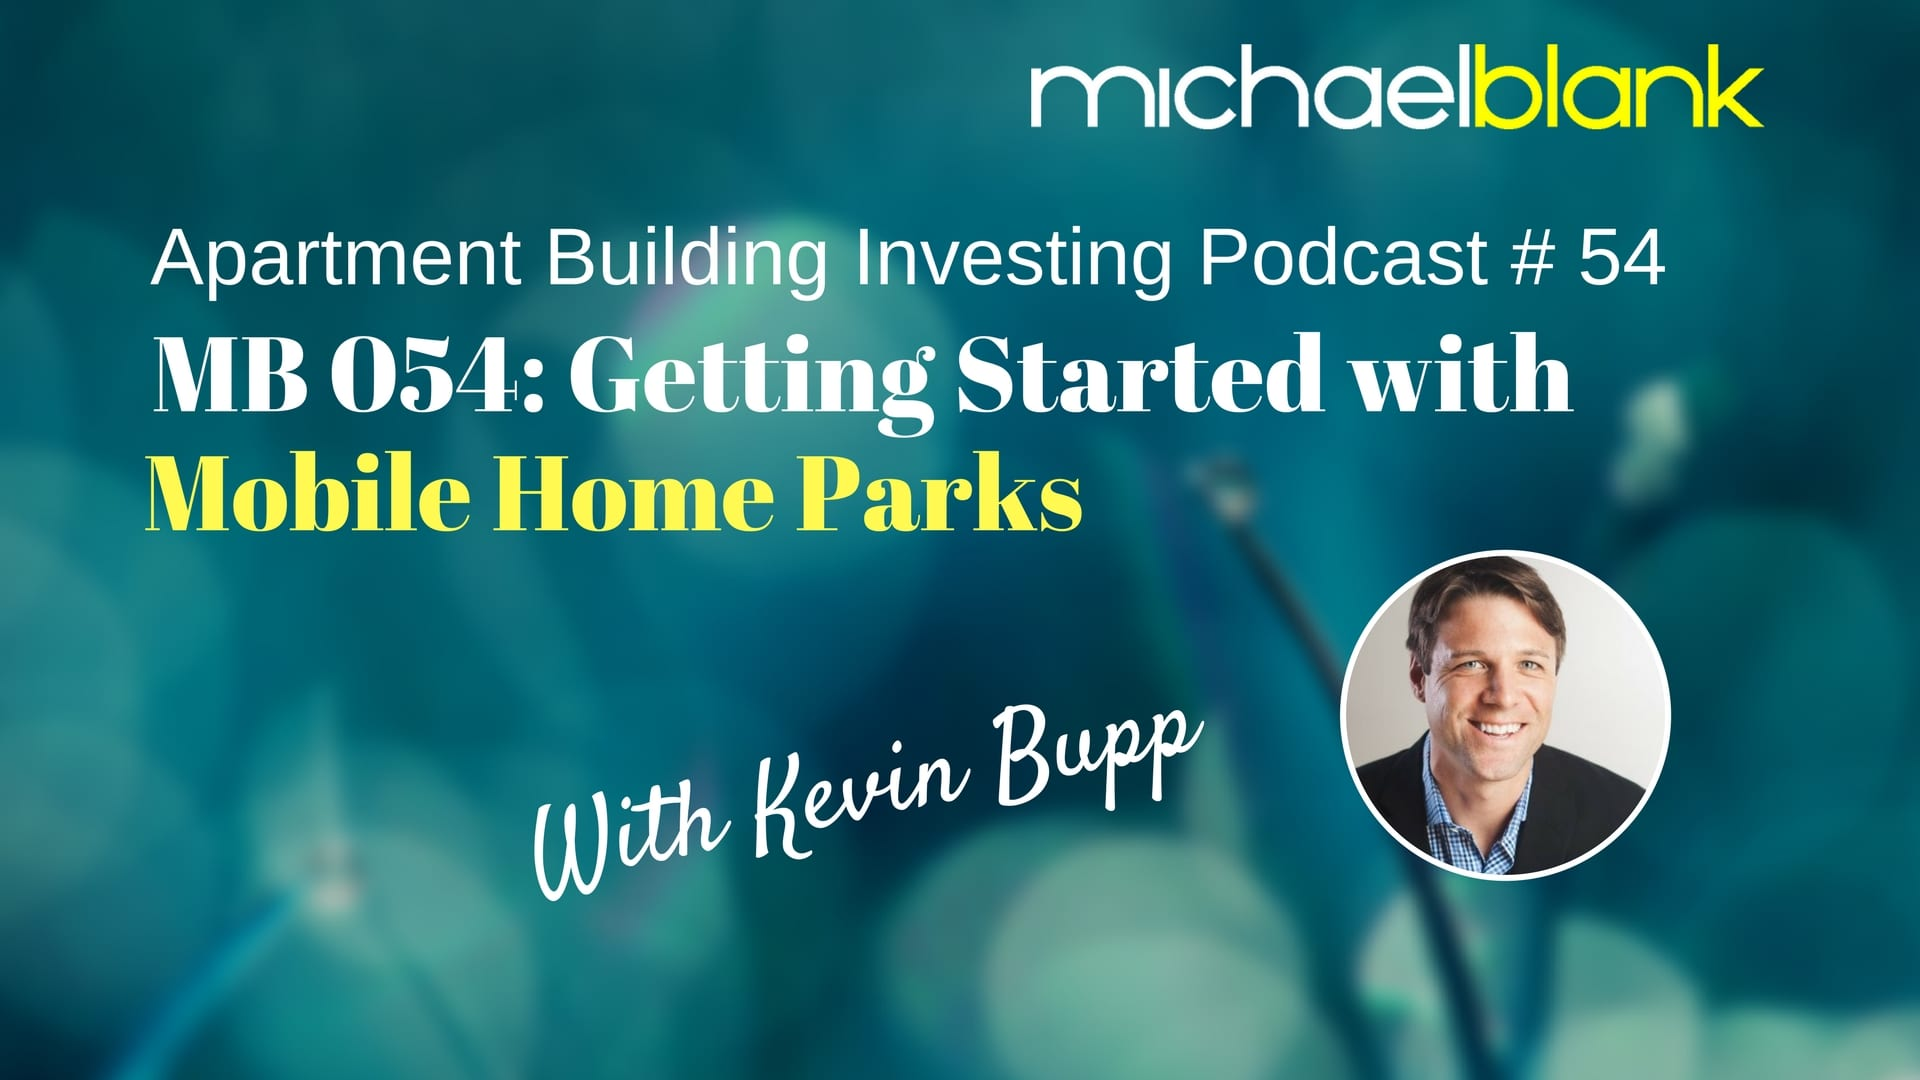 MB 054: Getting Started with Mobile Home Parks – With Kevin Bupp